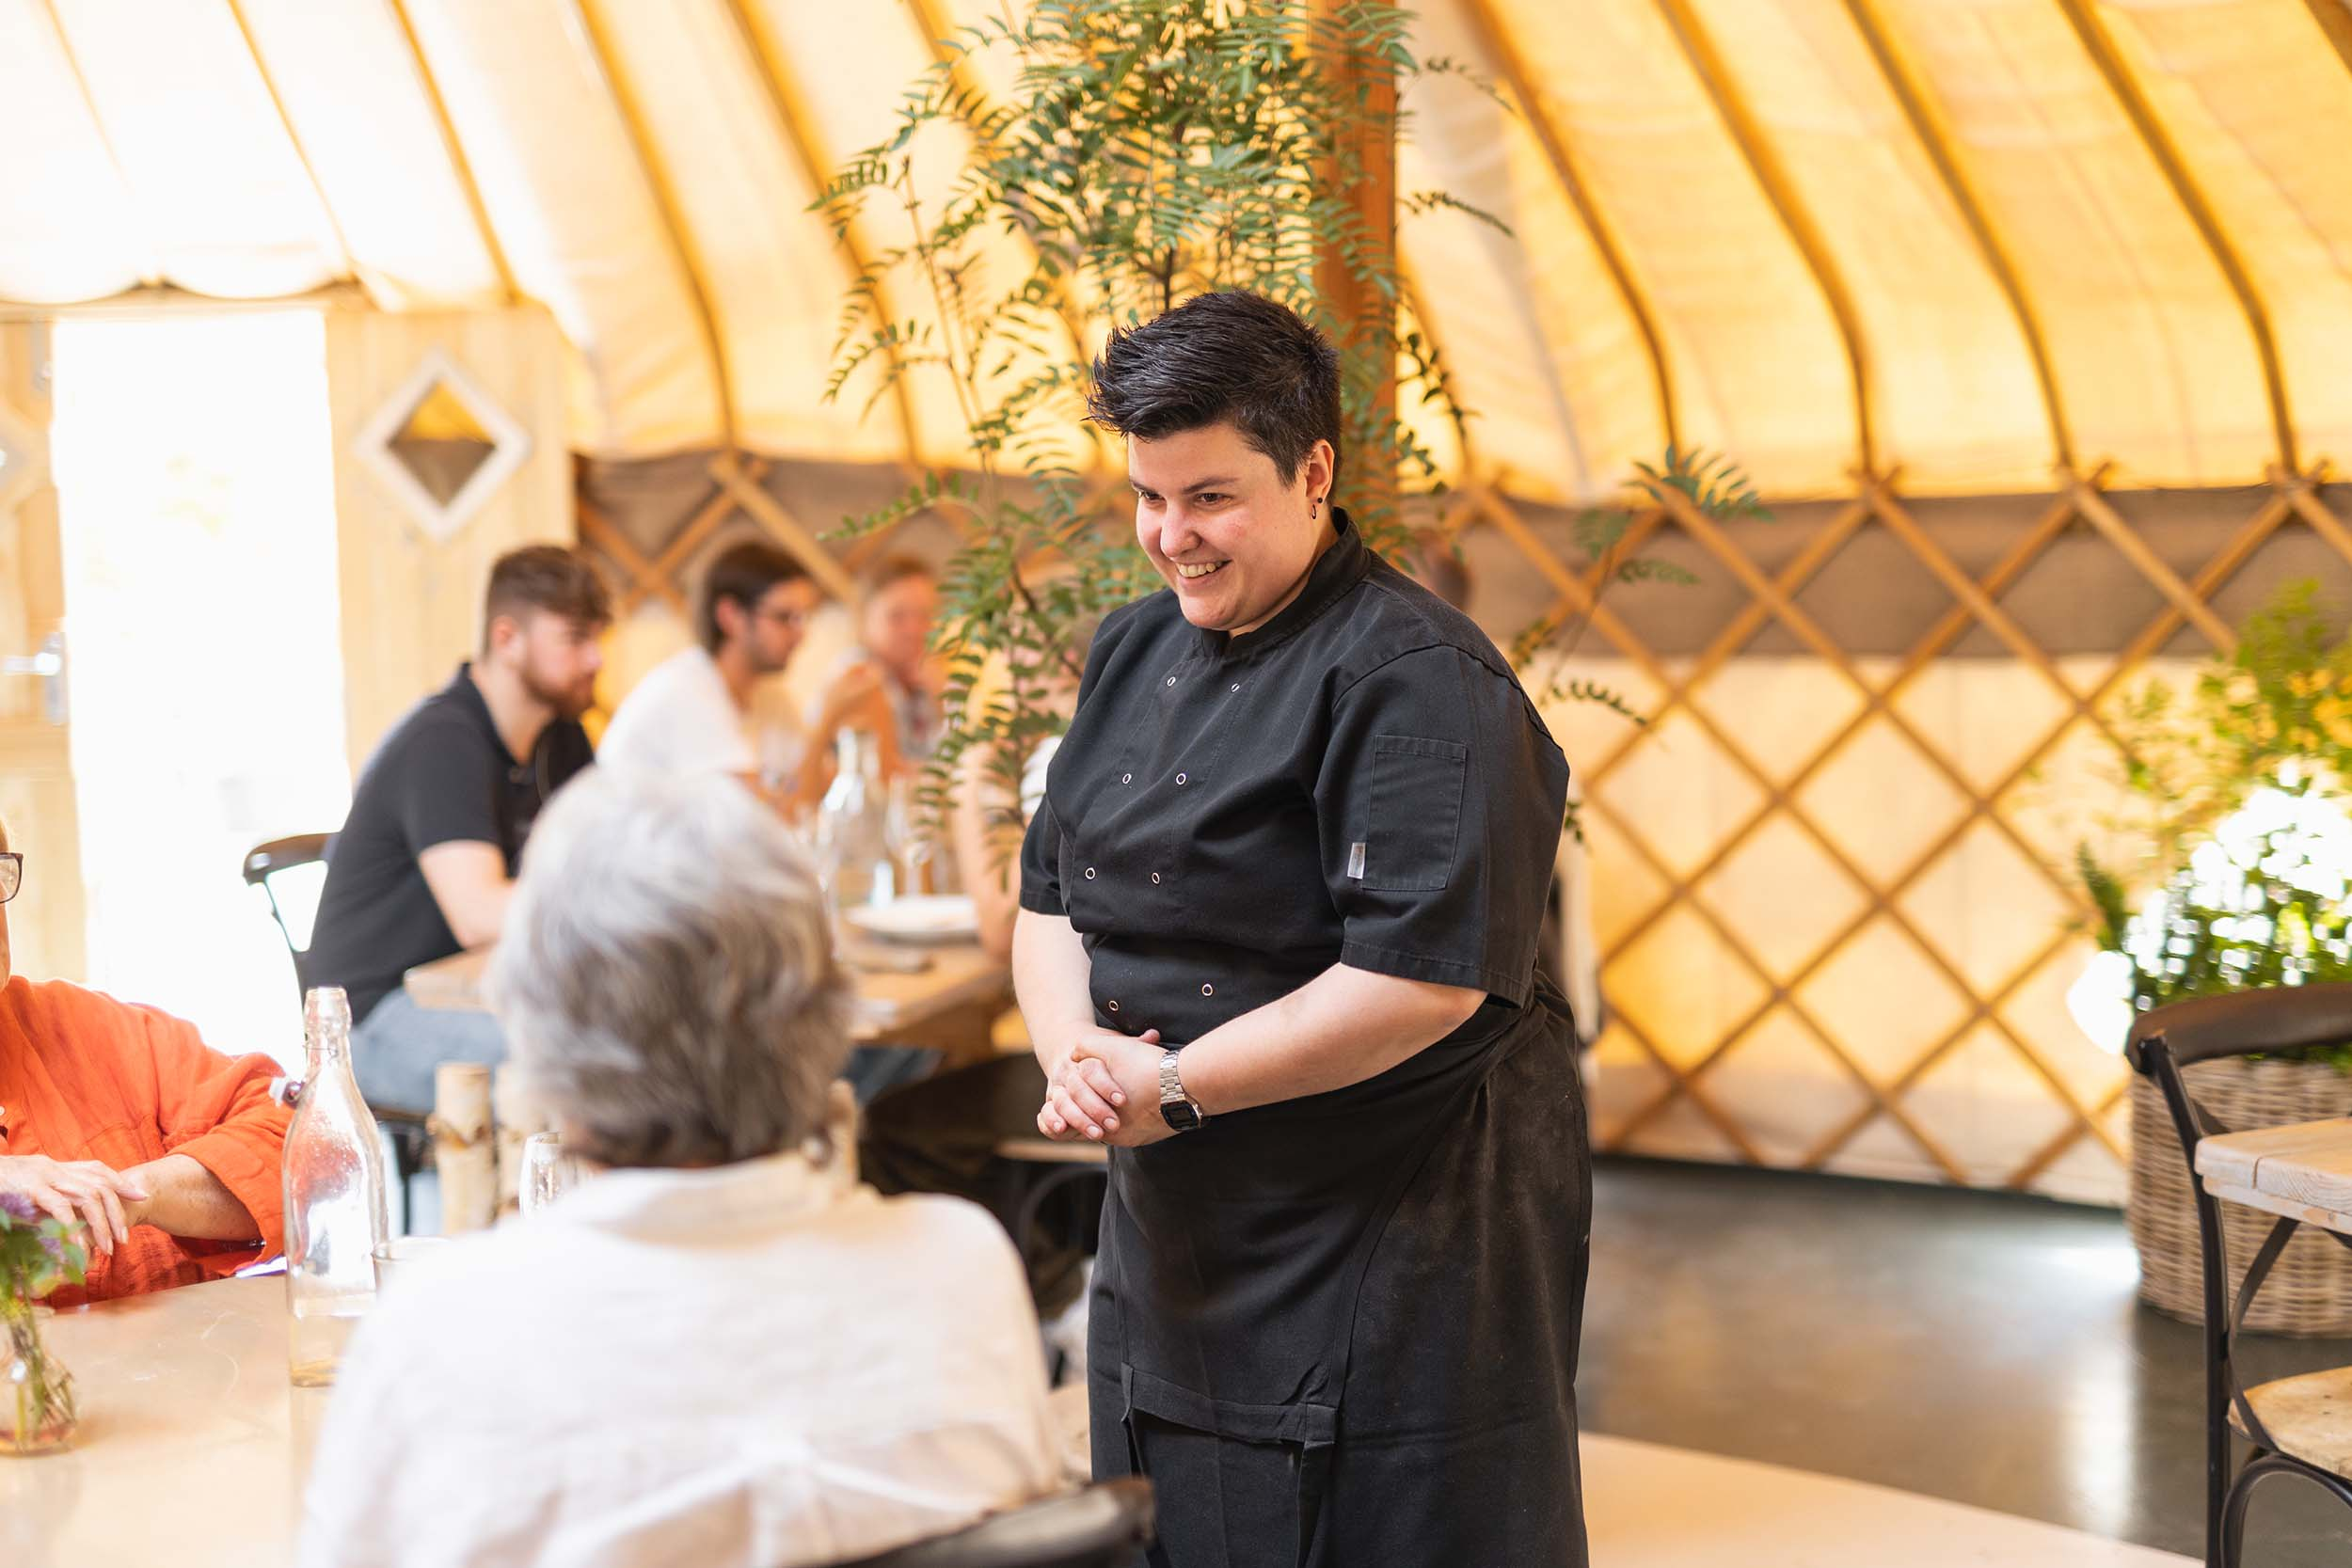 Frankie Michelini - Pastry chef at The Yurt at Nicholsons